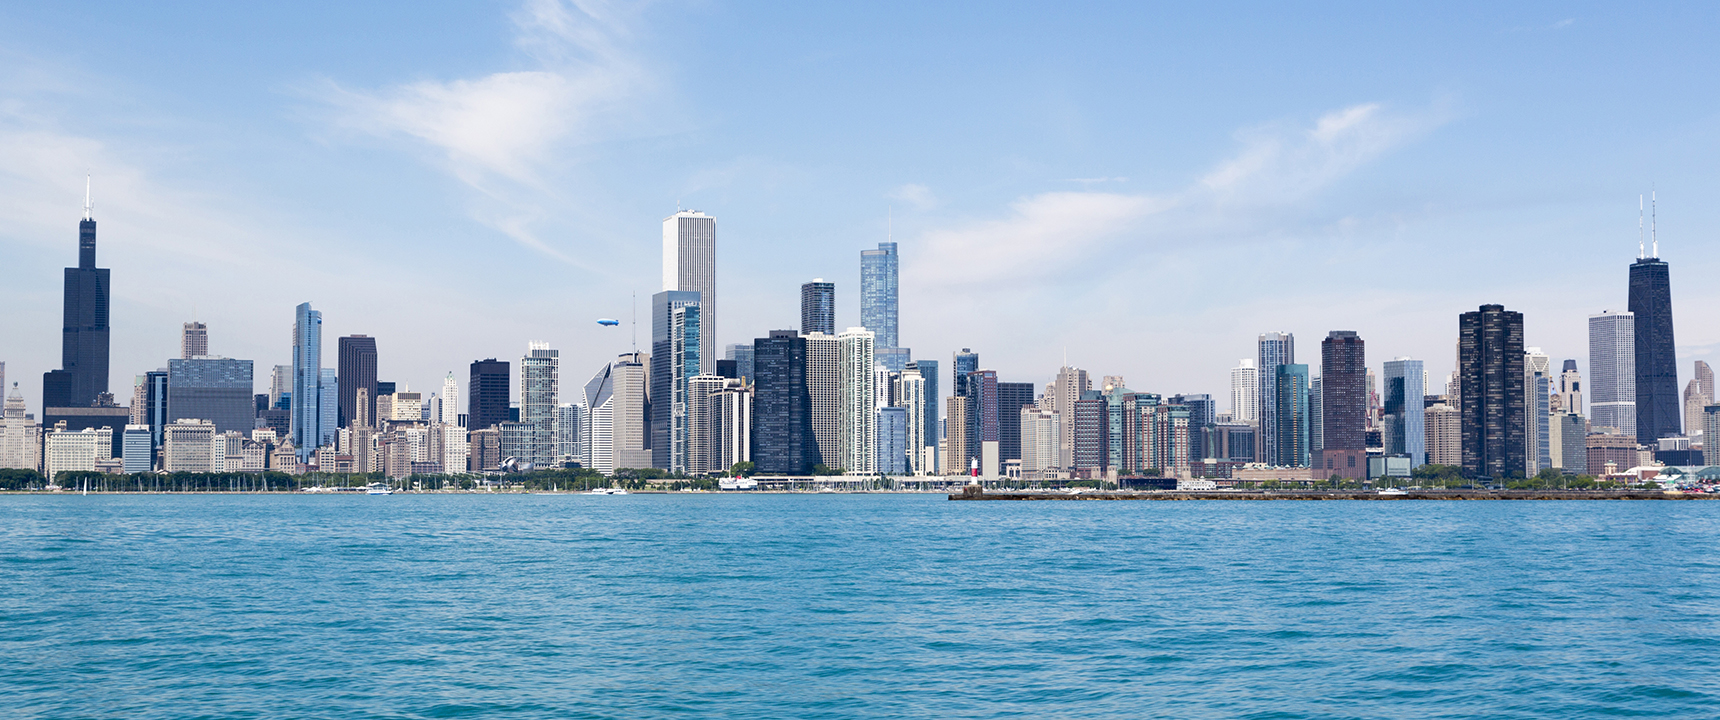 Photo of Chicago, Illinios where the Illiniois Business Center office is located just outside of.